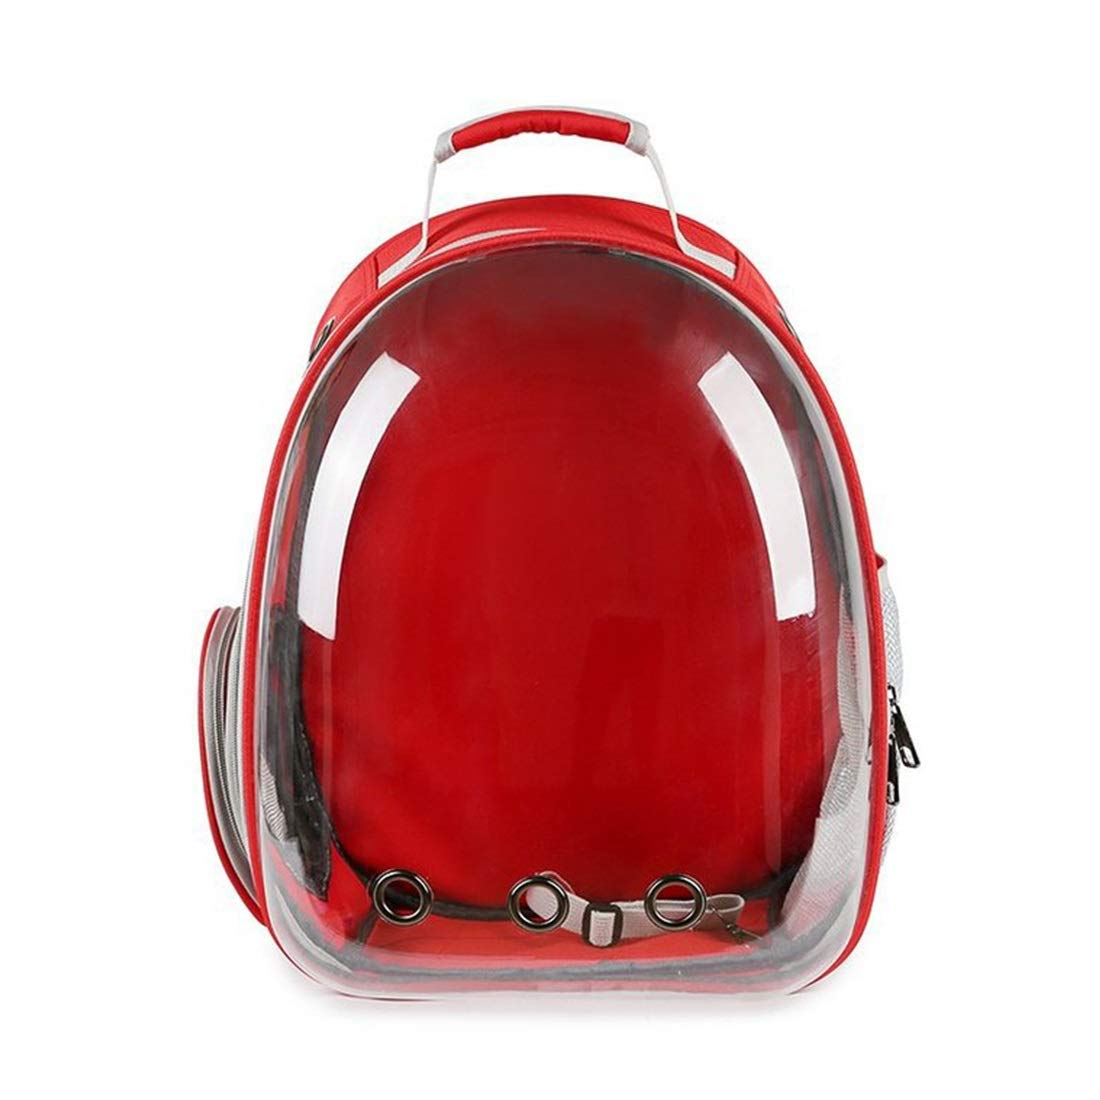 Red 42x31x28cm Red 42x31x28cm FELICIGG Pet Bag, Easy Bag Kitten And Puppy Space Capsule Backpack Large Capacity Breathable Backpack (color   Red, Size   42x31x28cm)